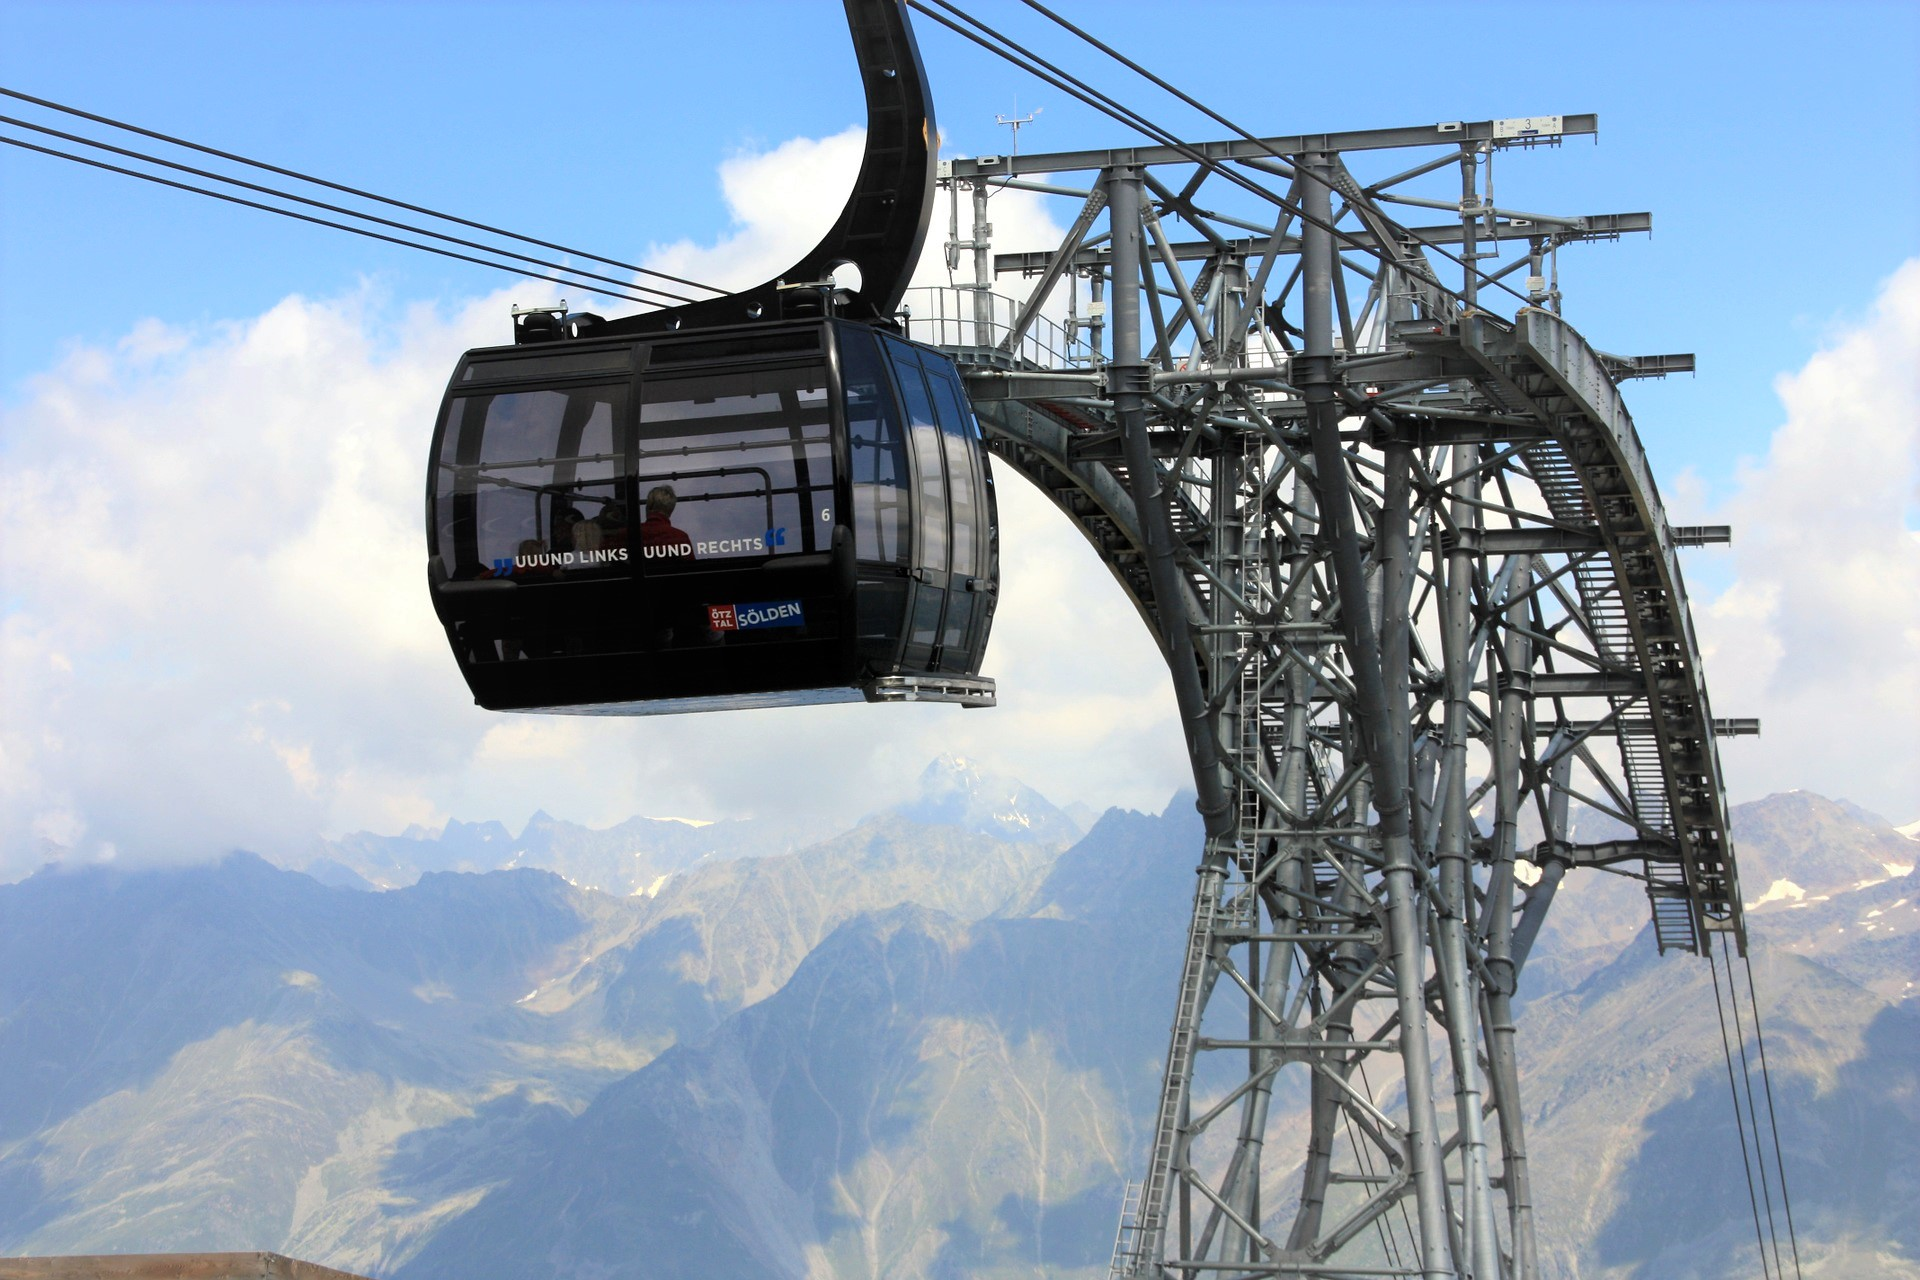 Solden Cable Car: Early Season Skiing